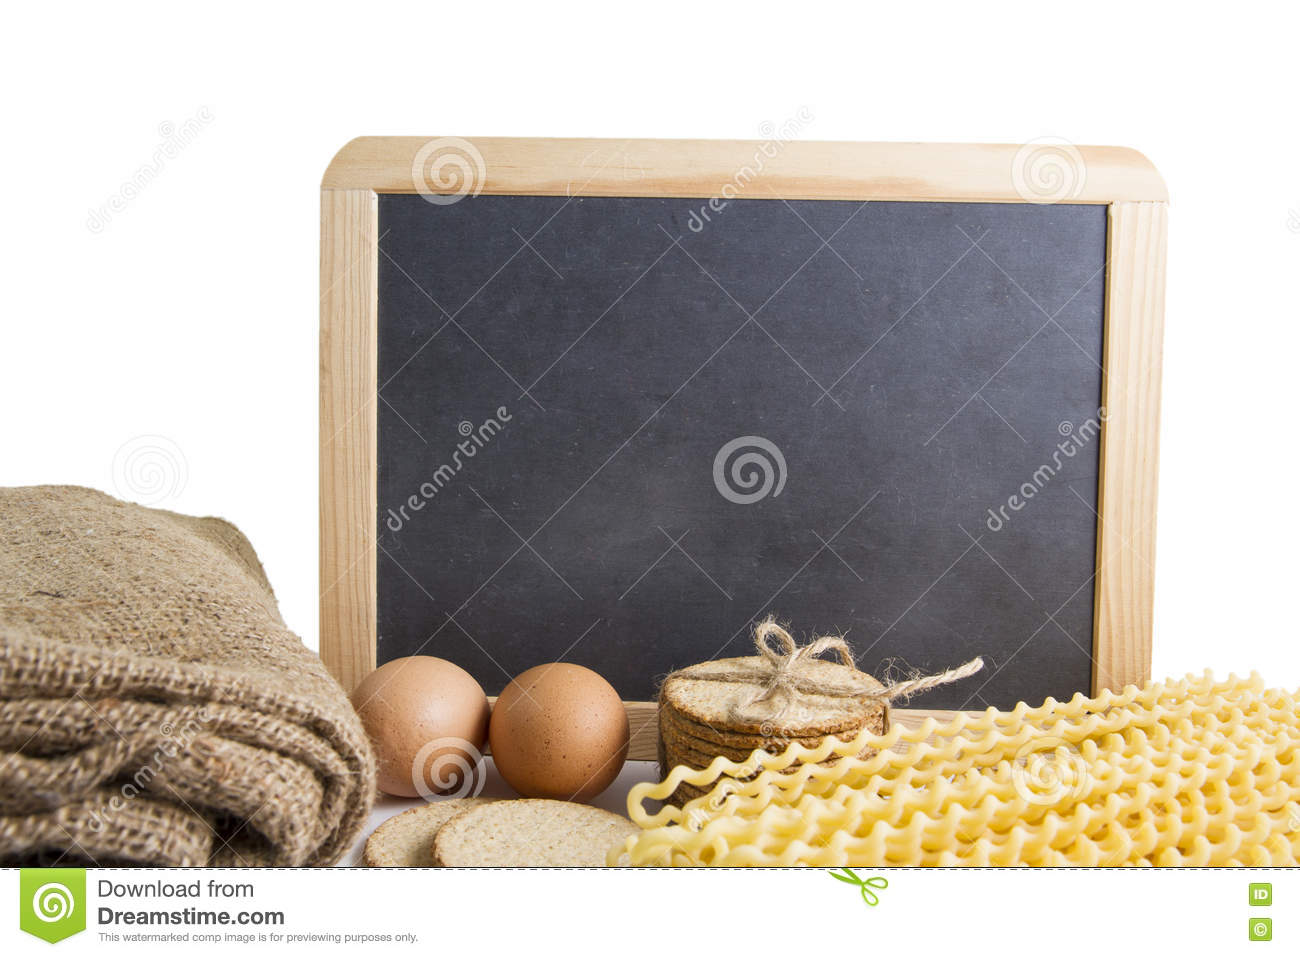 Organic yellow long pasta spirals and egg with black board background for text